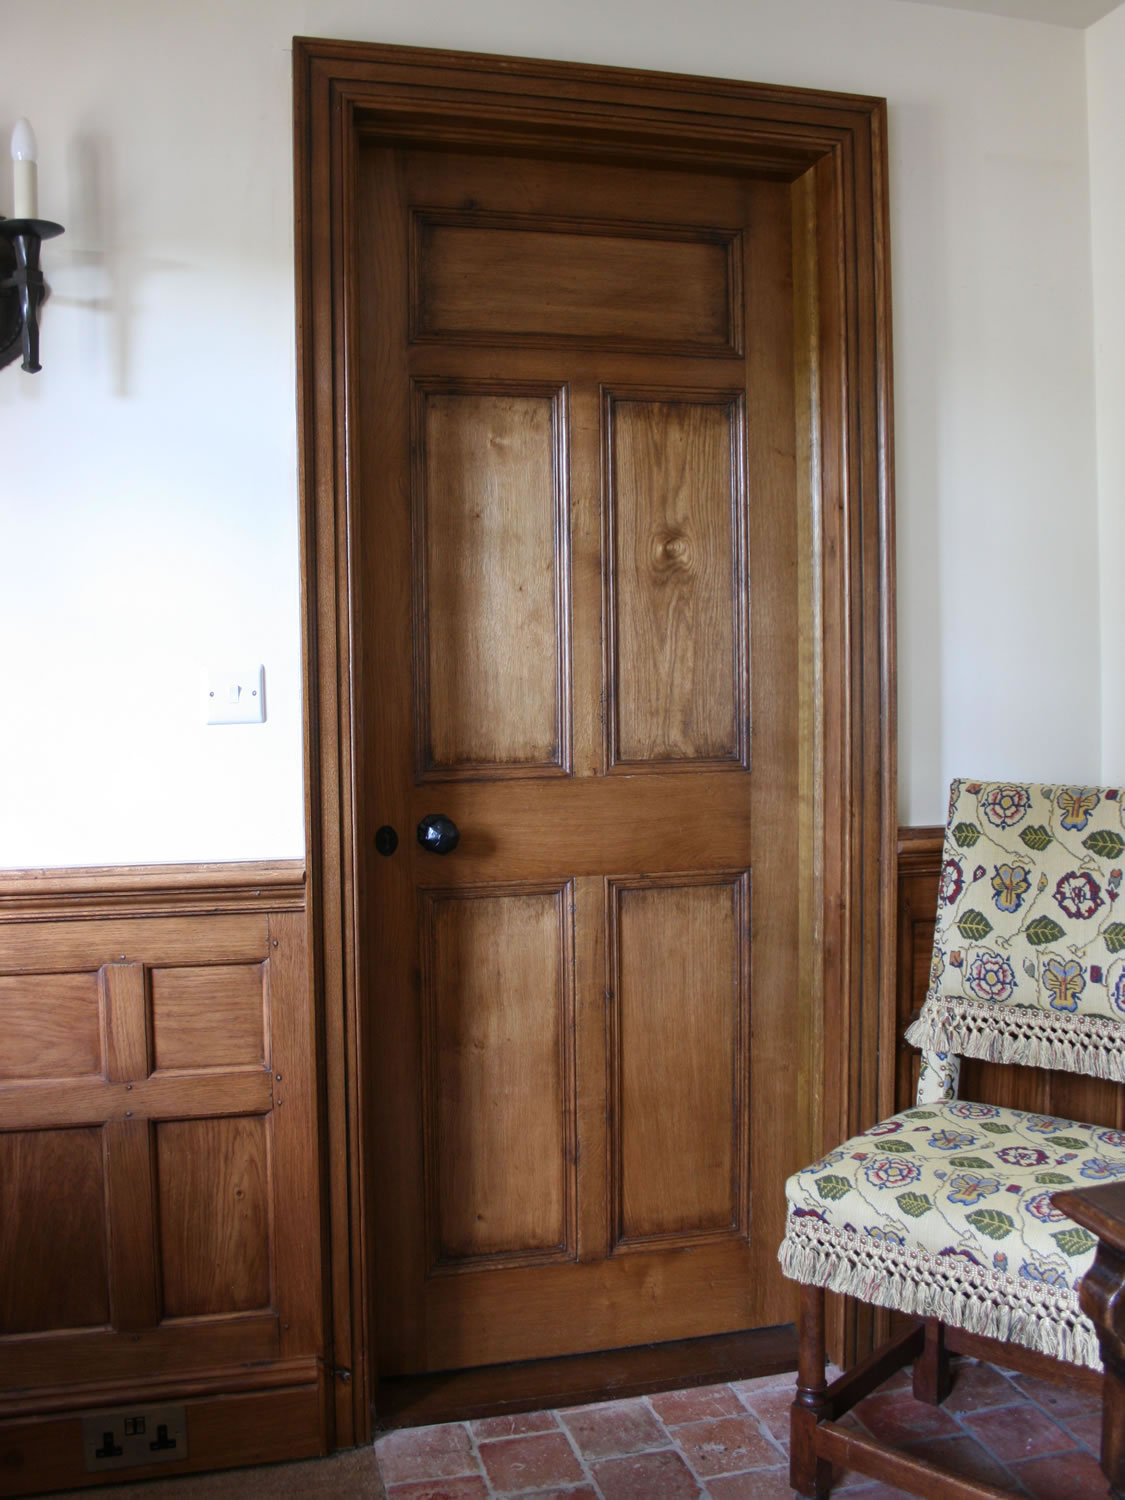 Oak panelled door, architave and dado panelling